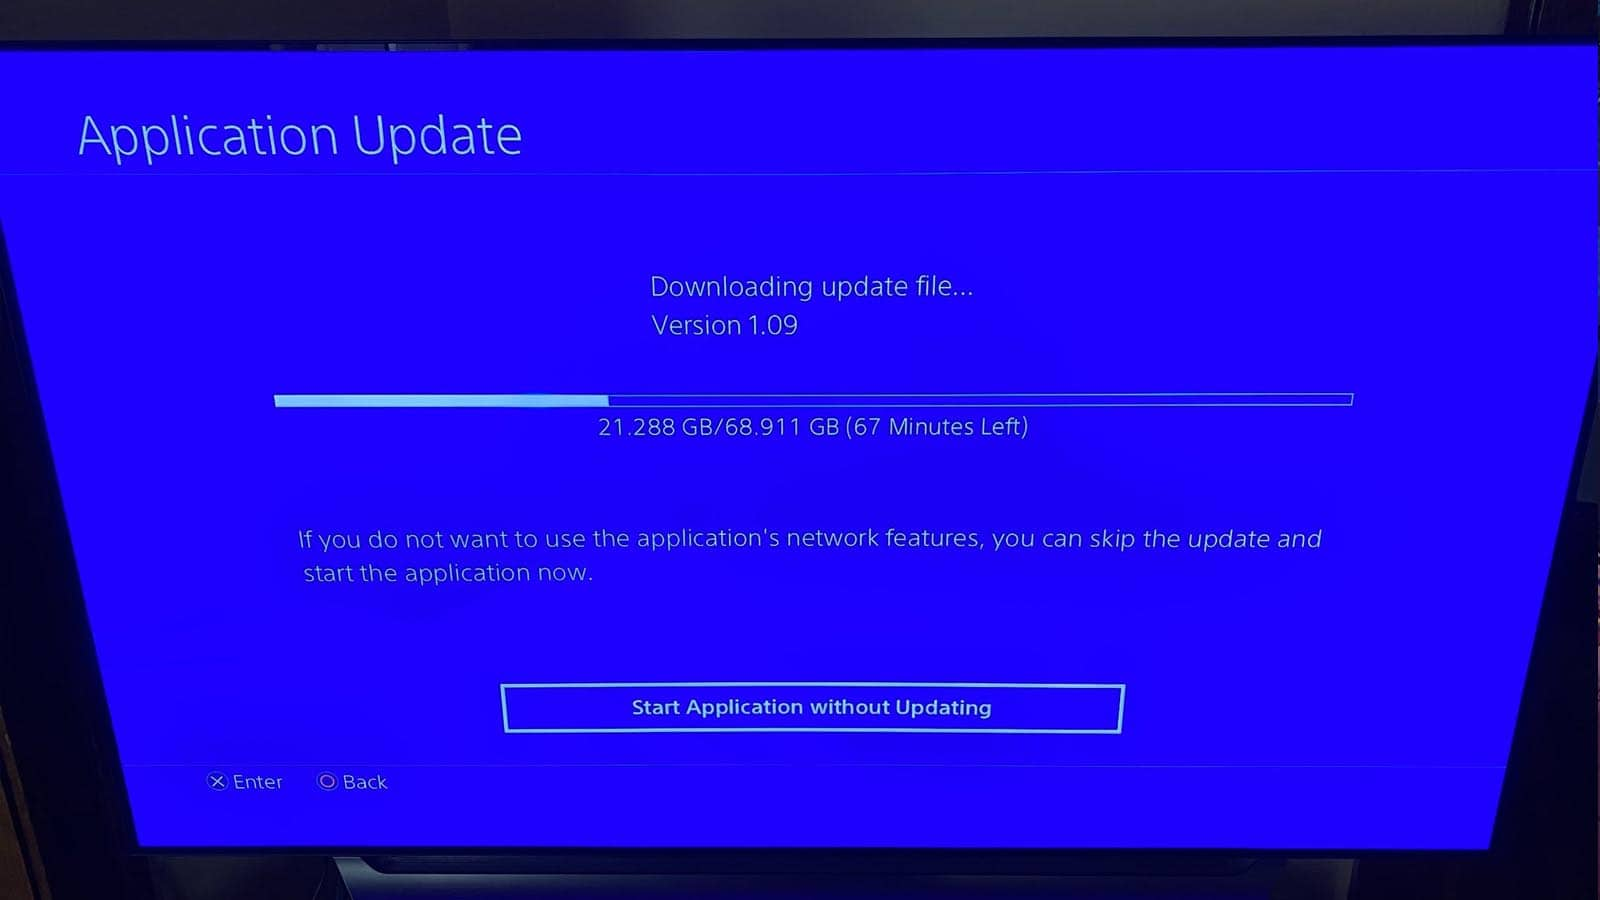 downloading updates on consoles